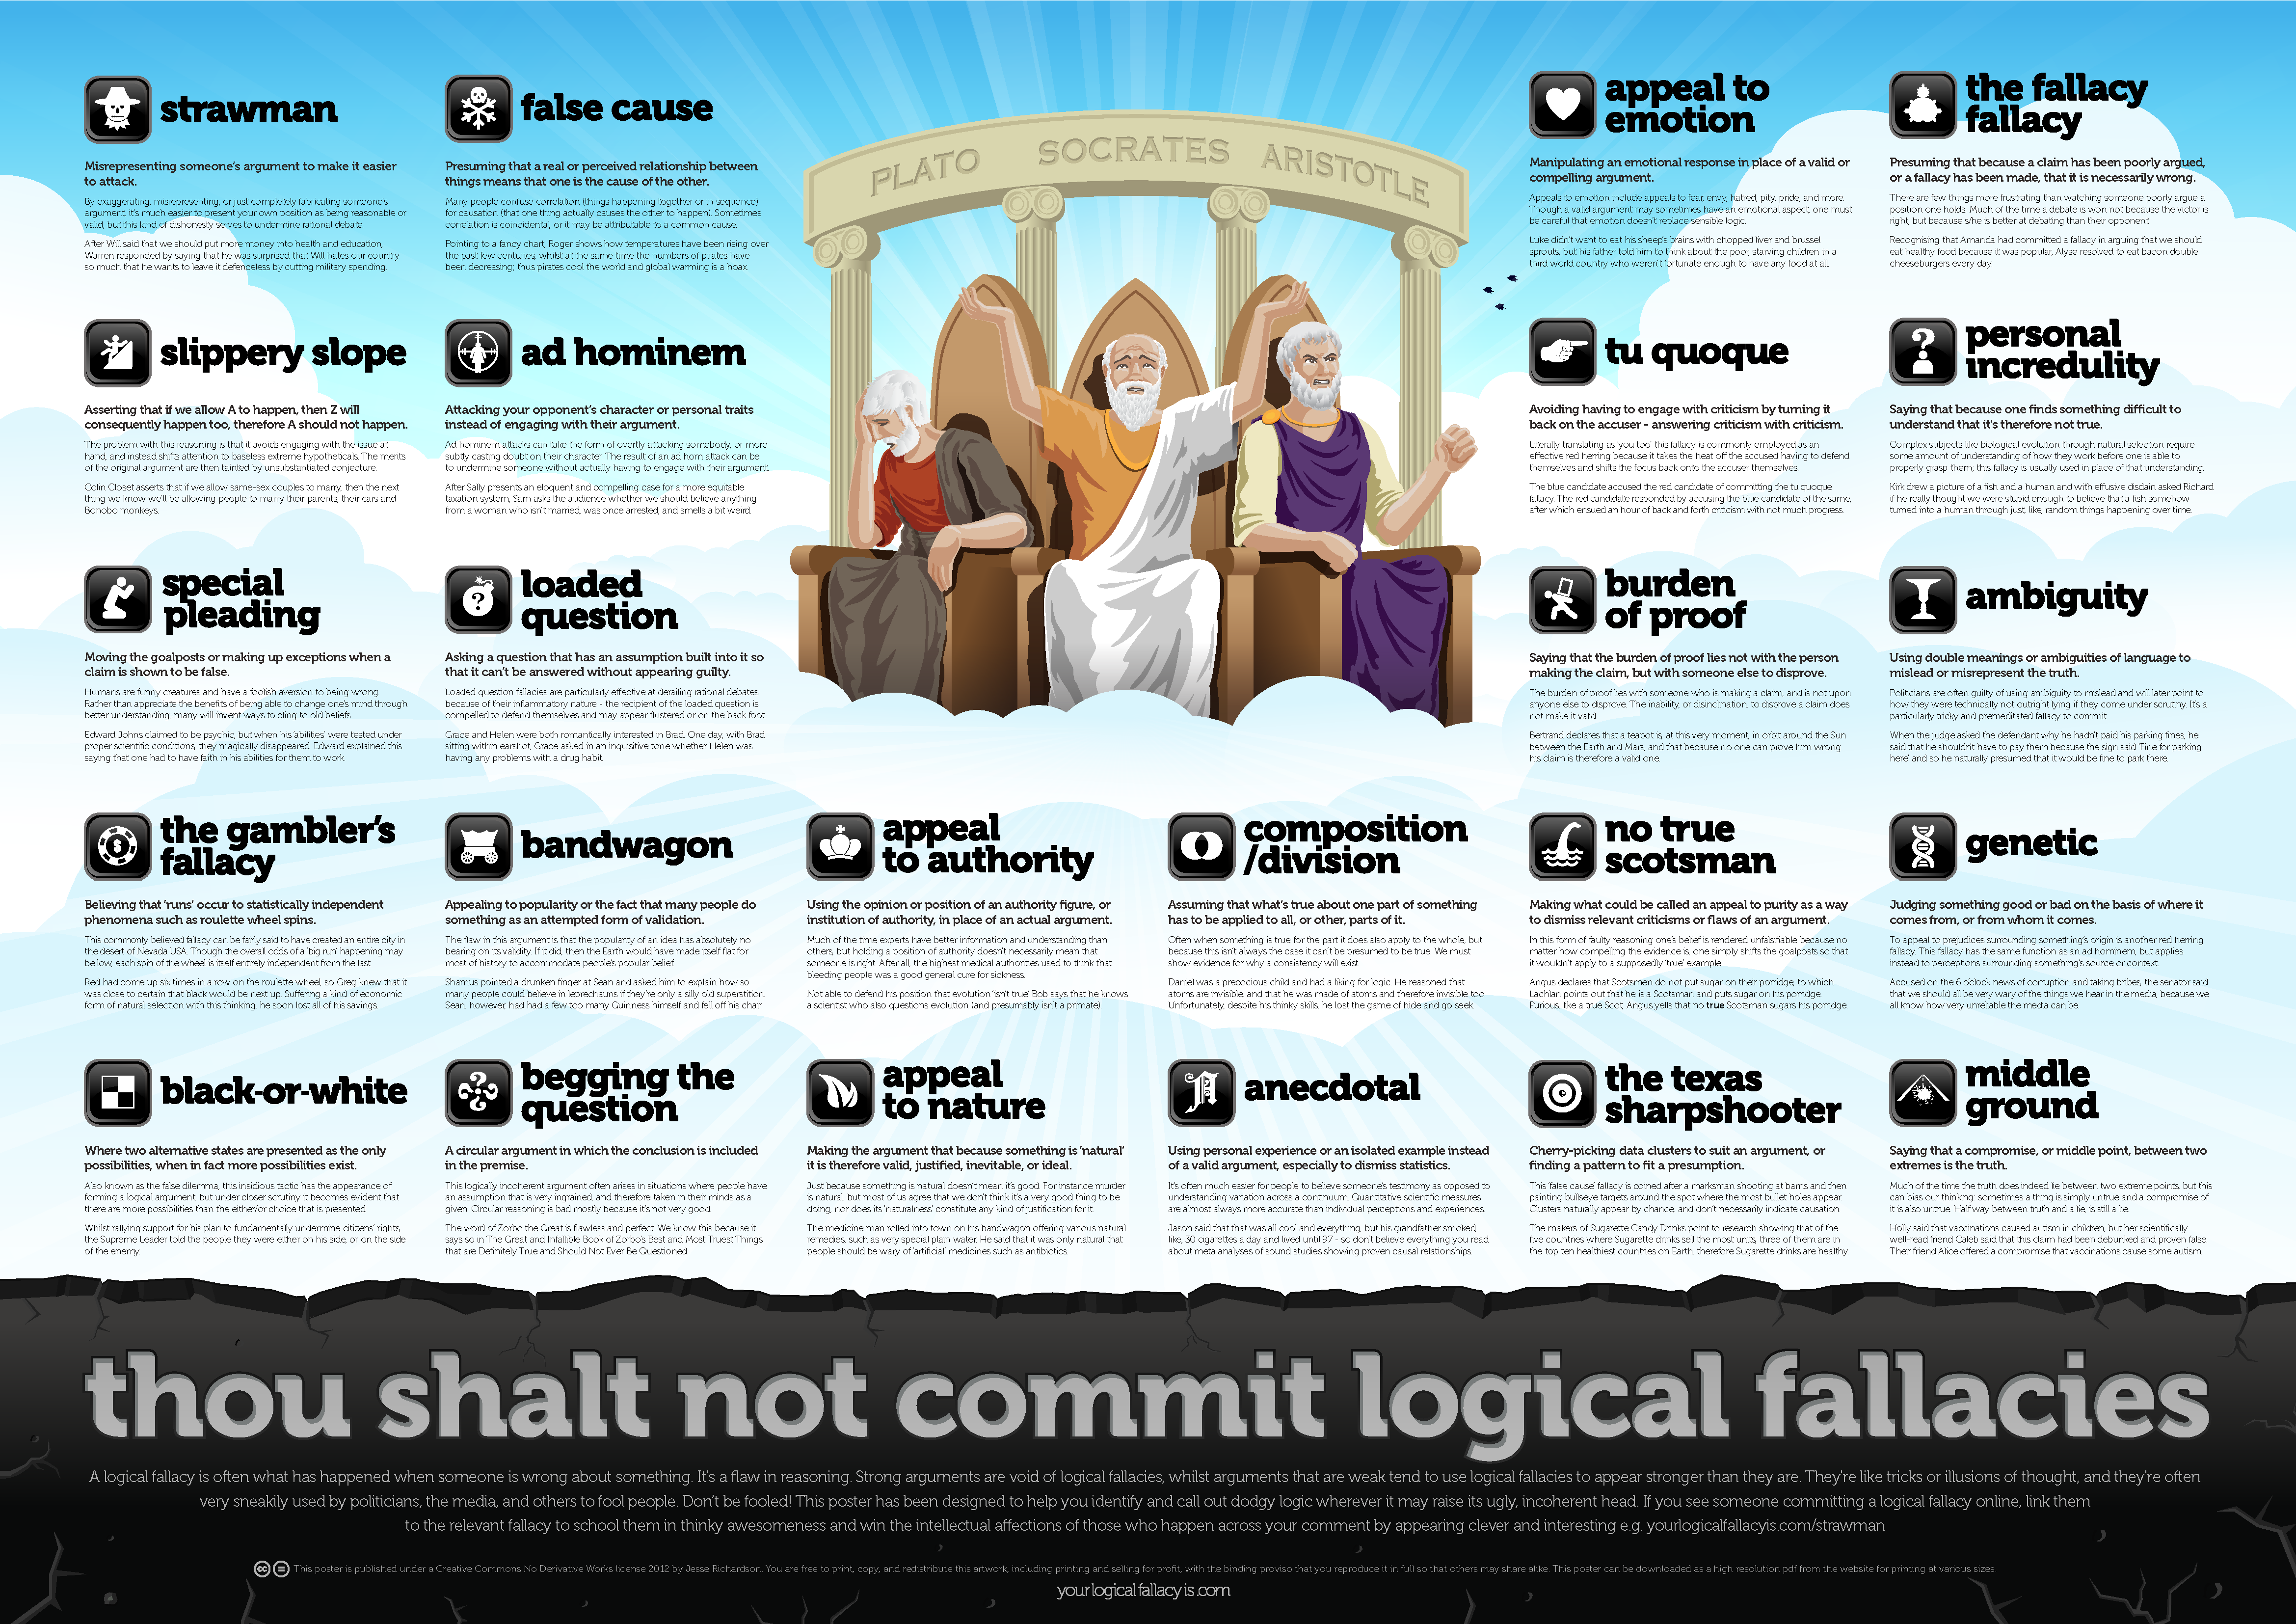 graphic of fallacies